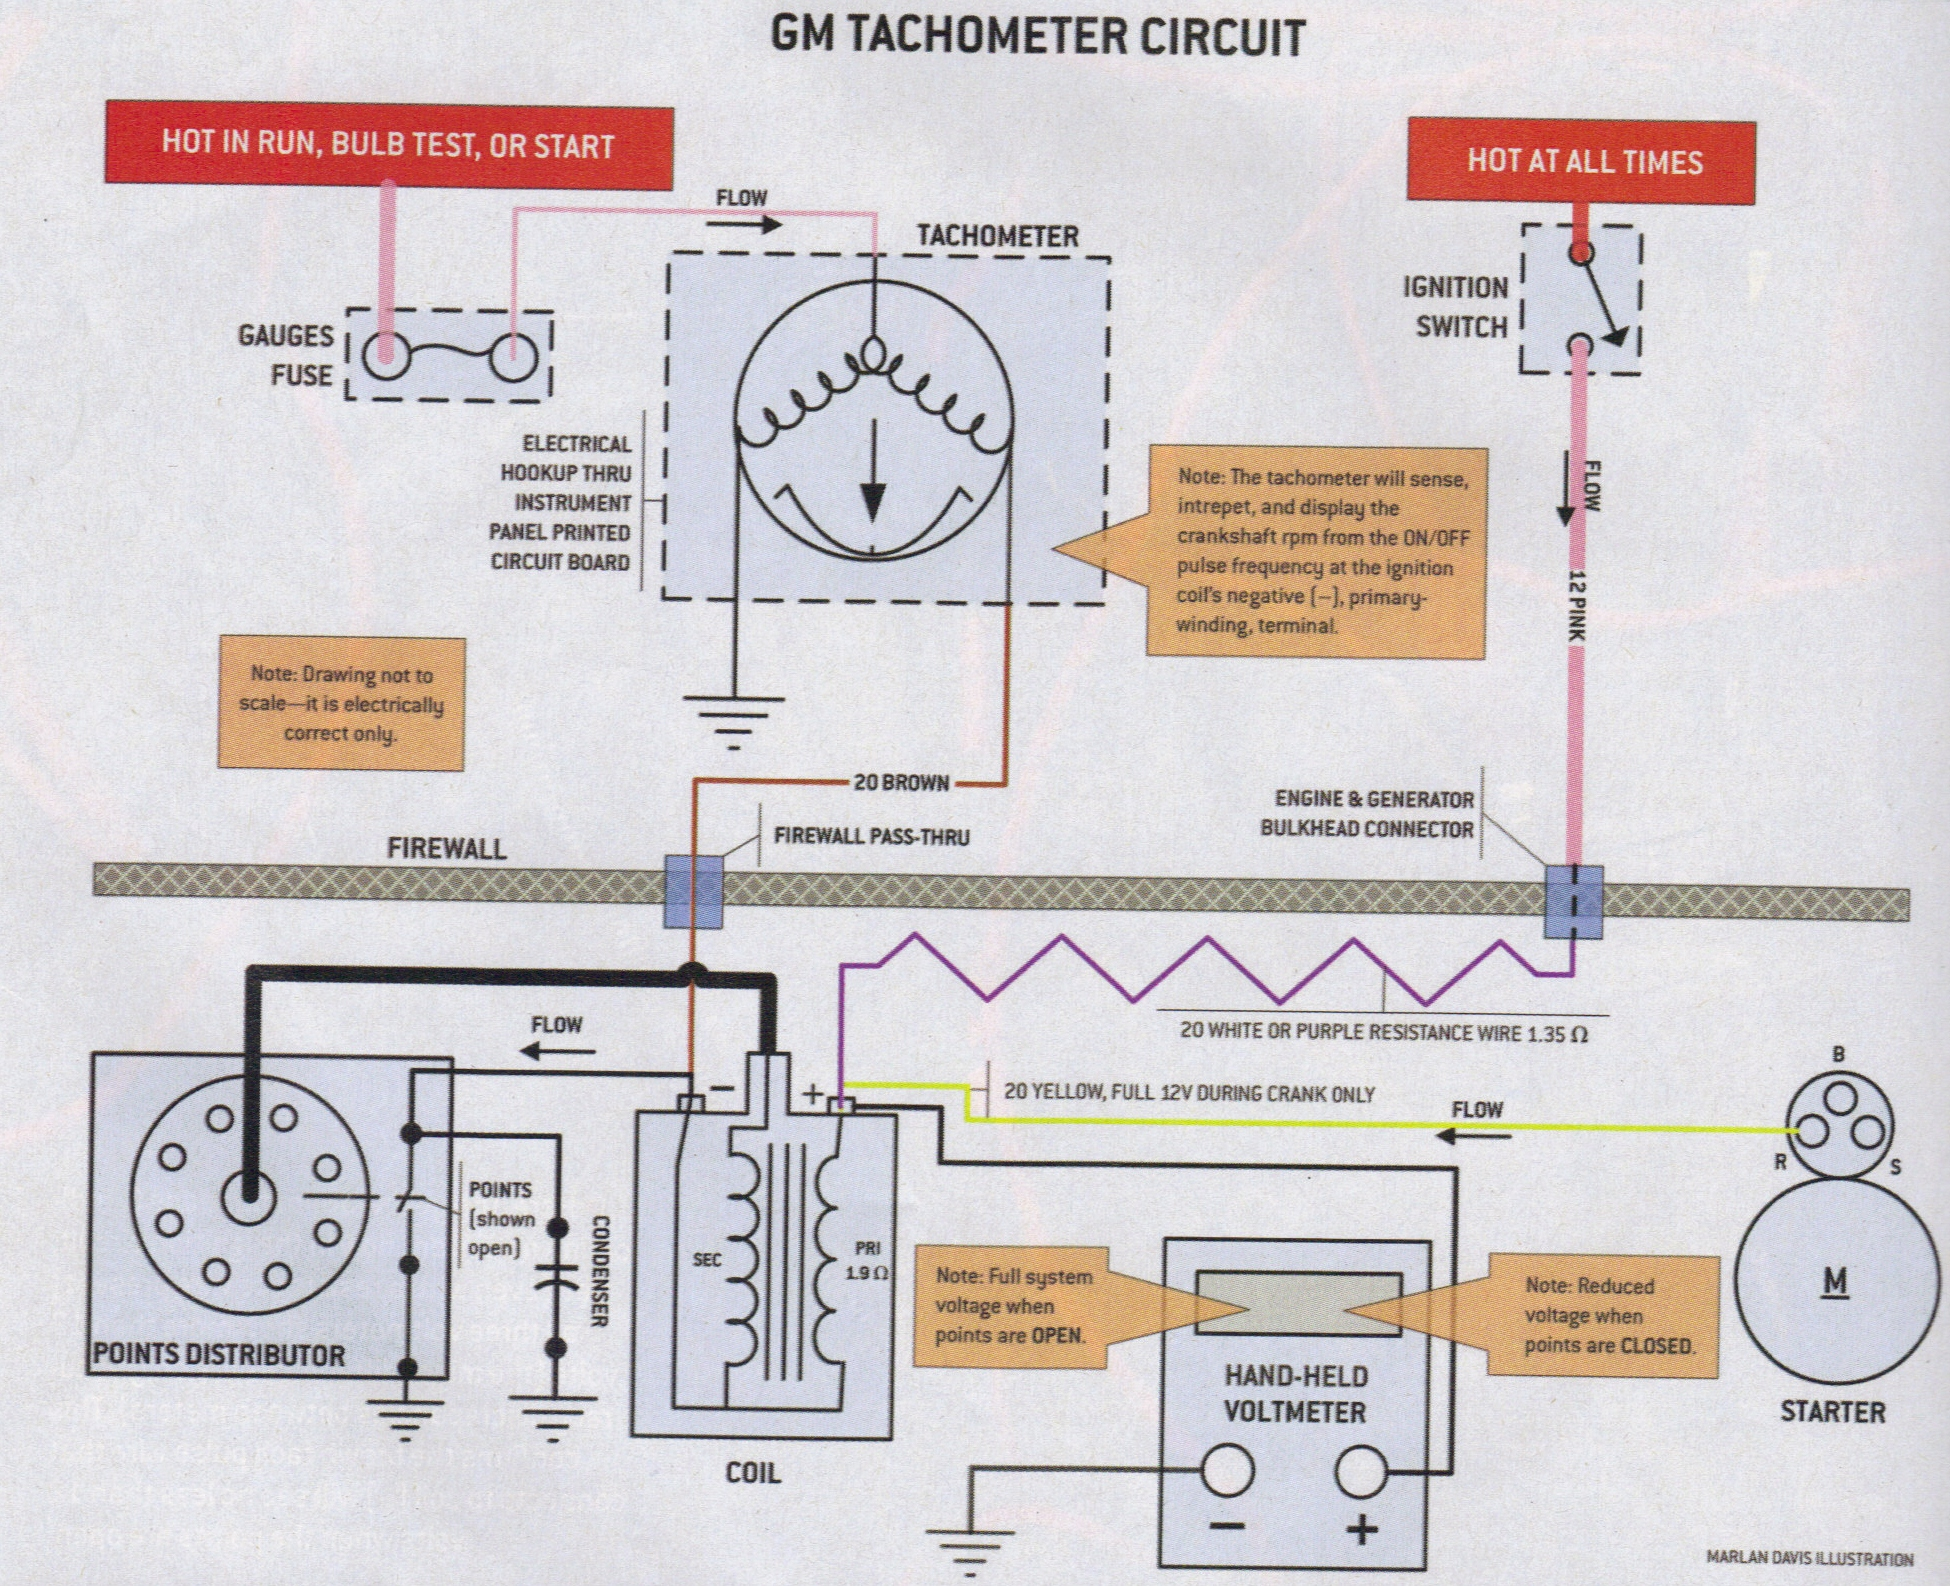 GM Tach Wiring - Drawing A